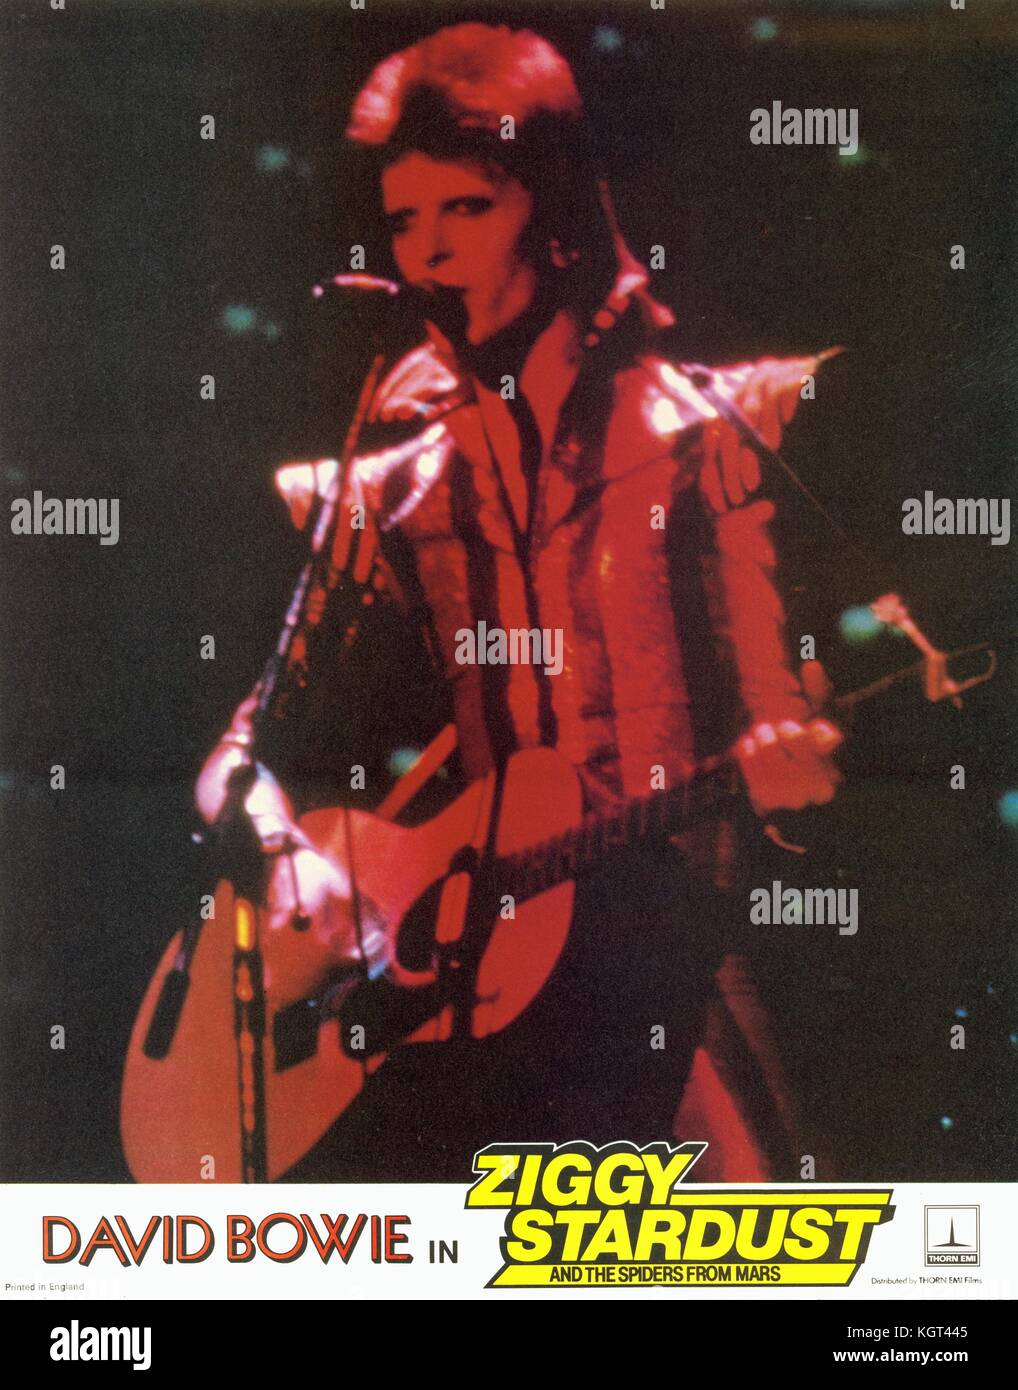 Ziggy Stardust and the Spiders from Mars (1973)David Bowie Date